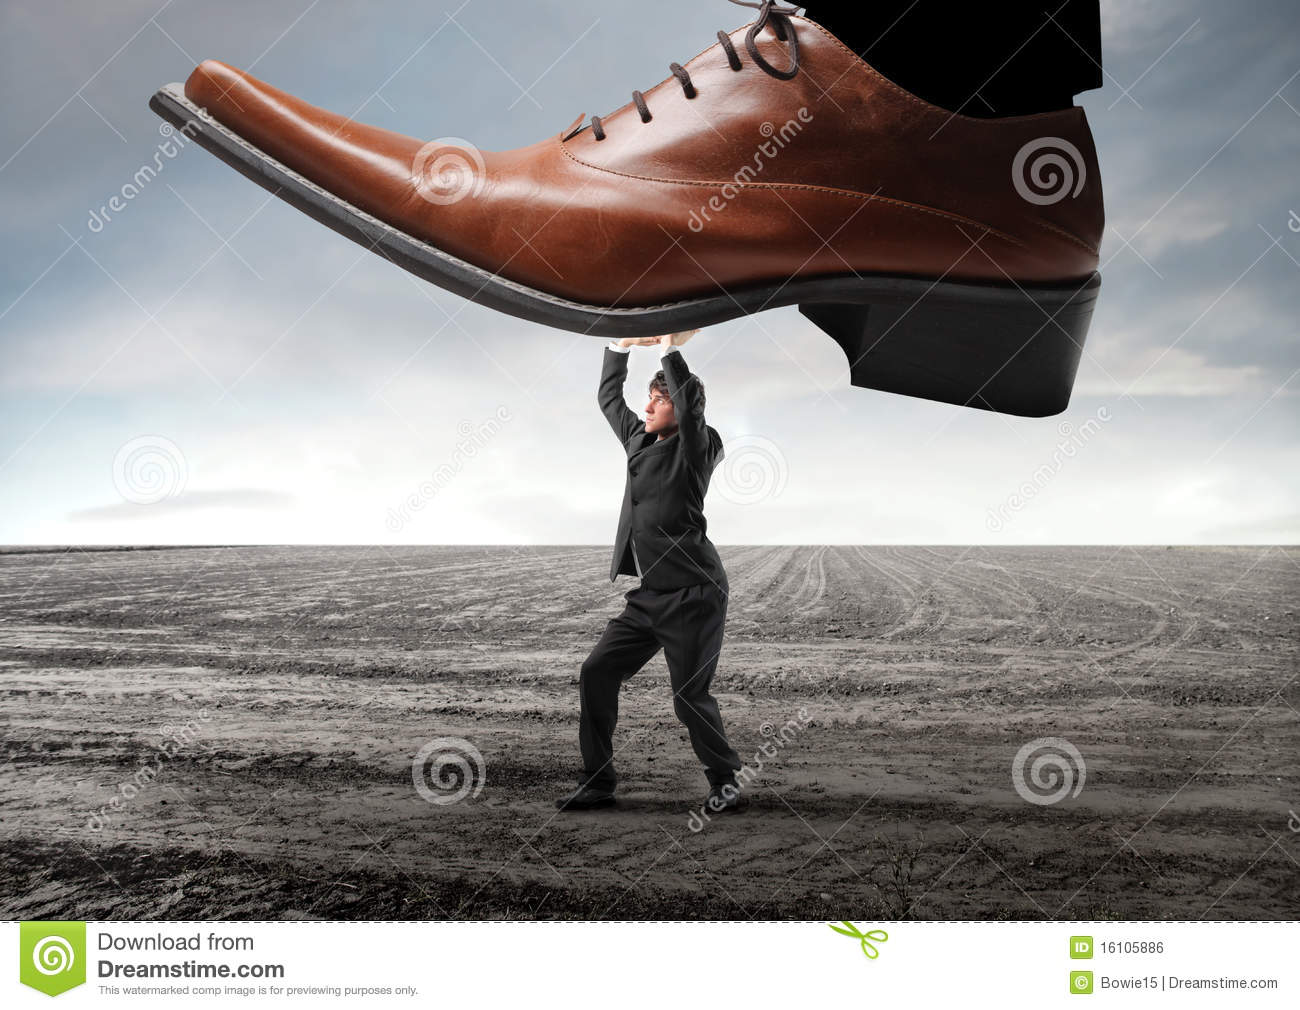 Withstand stock photo. Image of weight, idea, crush, sadness - 16105886